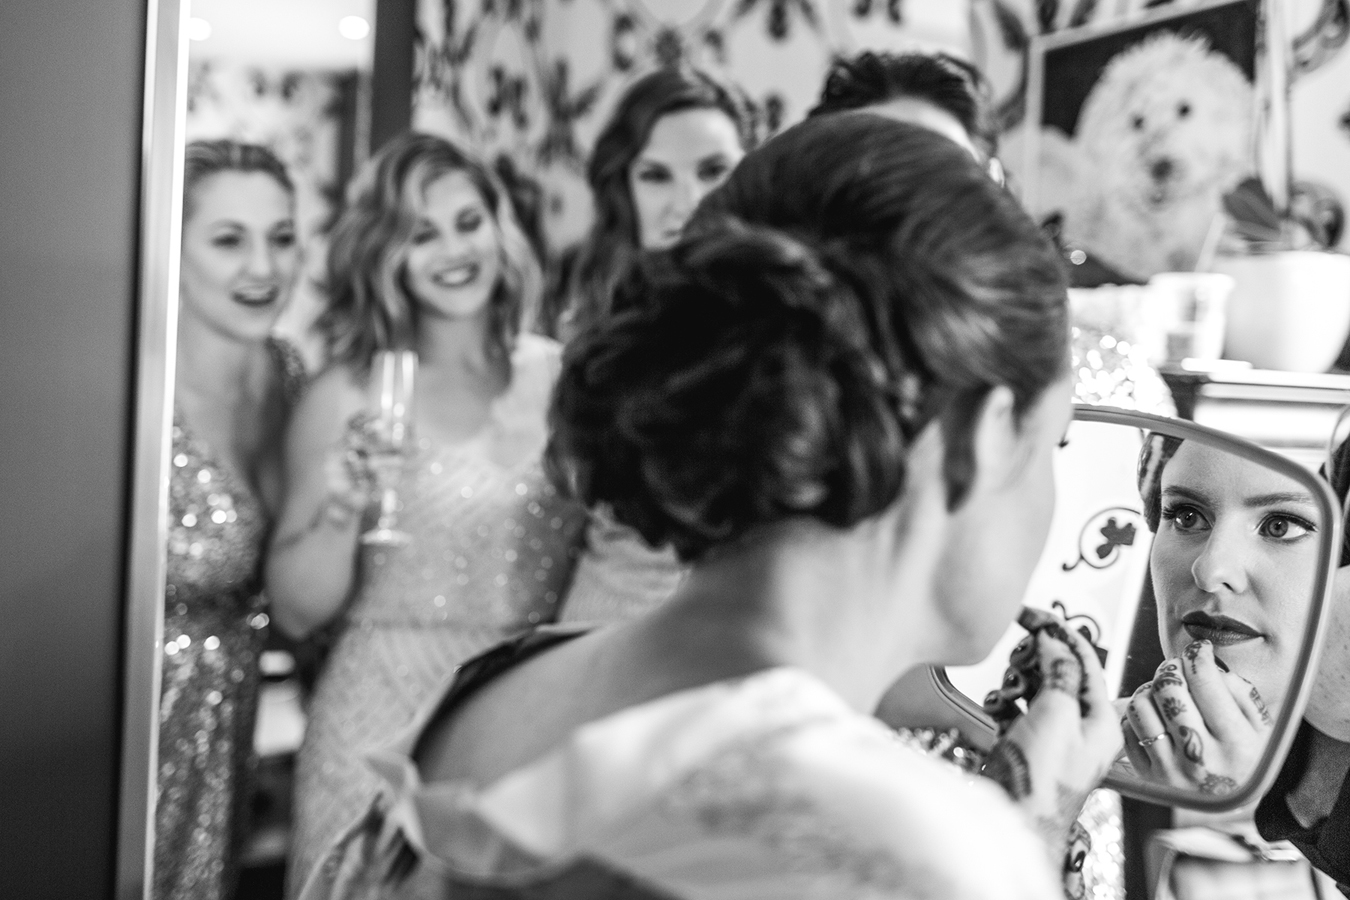 bridesmaids watch the bride putting her lipstick on